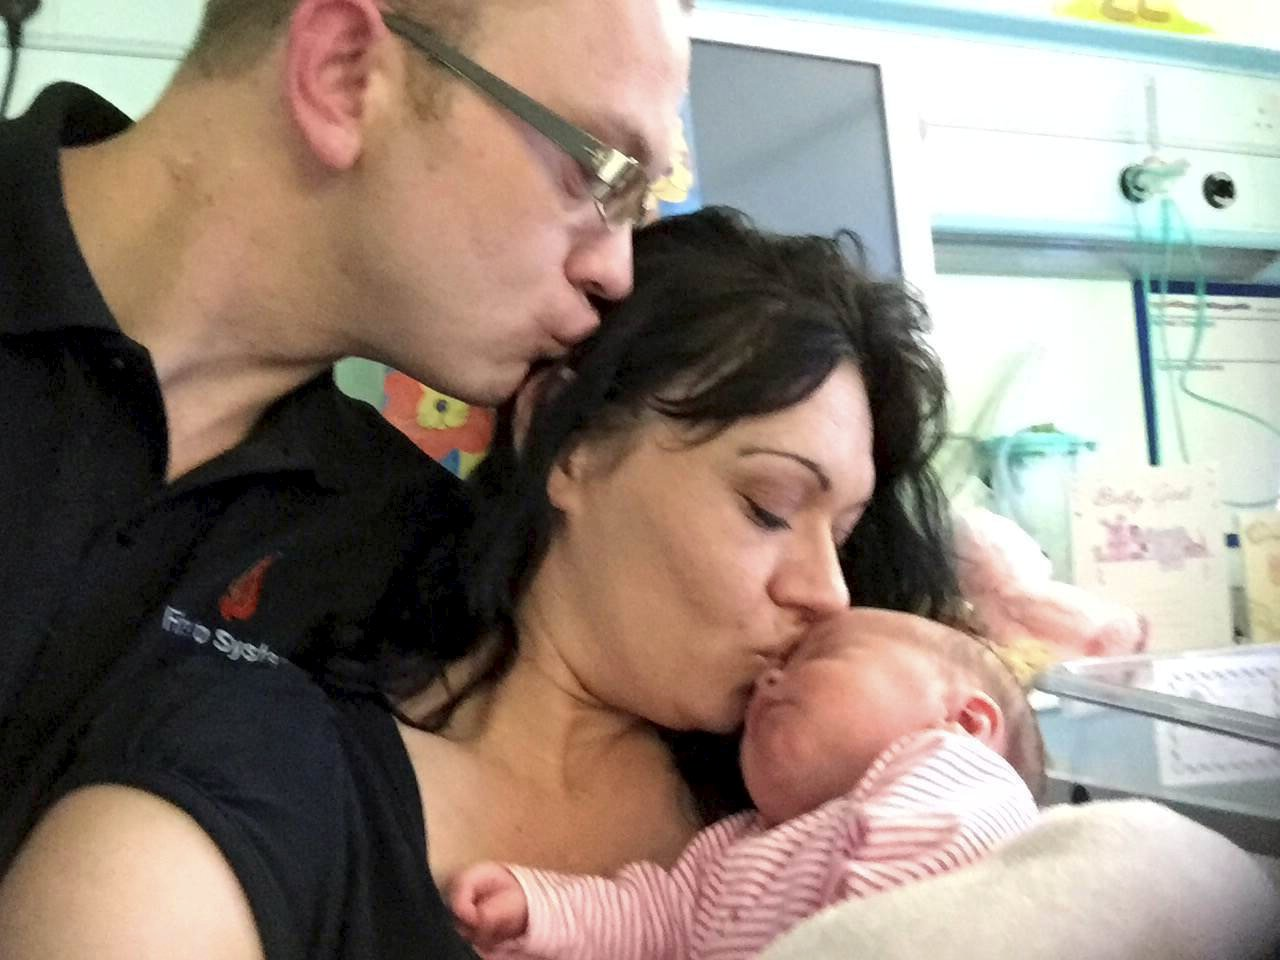 """Collect photo of Donna Cross who was attacked on her doorstep pictured with partner Jon Stone and their daughter Jordannah-Skye. See SWNS story SWSTAB; A new mum was inches from death after she told noisy yobs they were waking her baby - and one stabbed her in the chest. Donna Cross had """"reached the end of her tether"""" with the gang after they woke up eight-week-old daughter Jordannah-Skye. The new mum was stabbed in the chest - narrowly missing her heart - by one of the thugs after telling them to """"shut up"""". Donna was rushed to King's Cross Hospital for emergency surgery after losing two-and-a-half pints of blood. She also suffered damage to her breast-bone."""